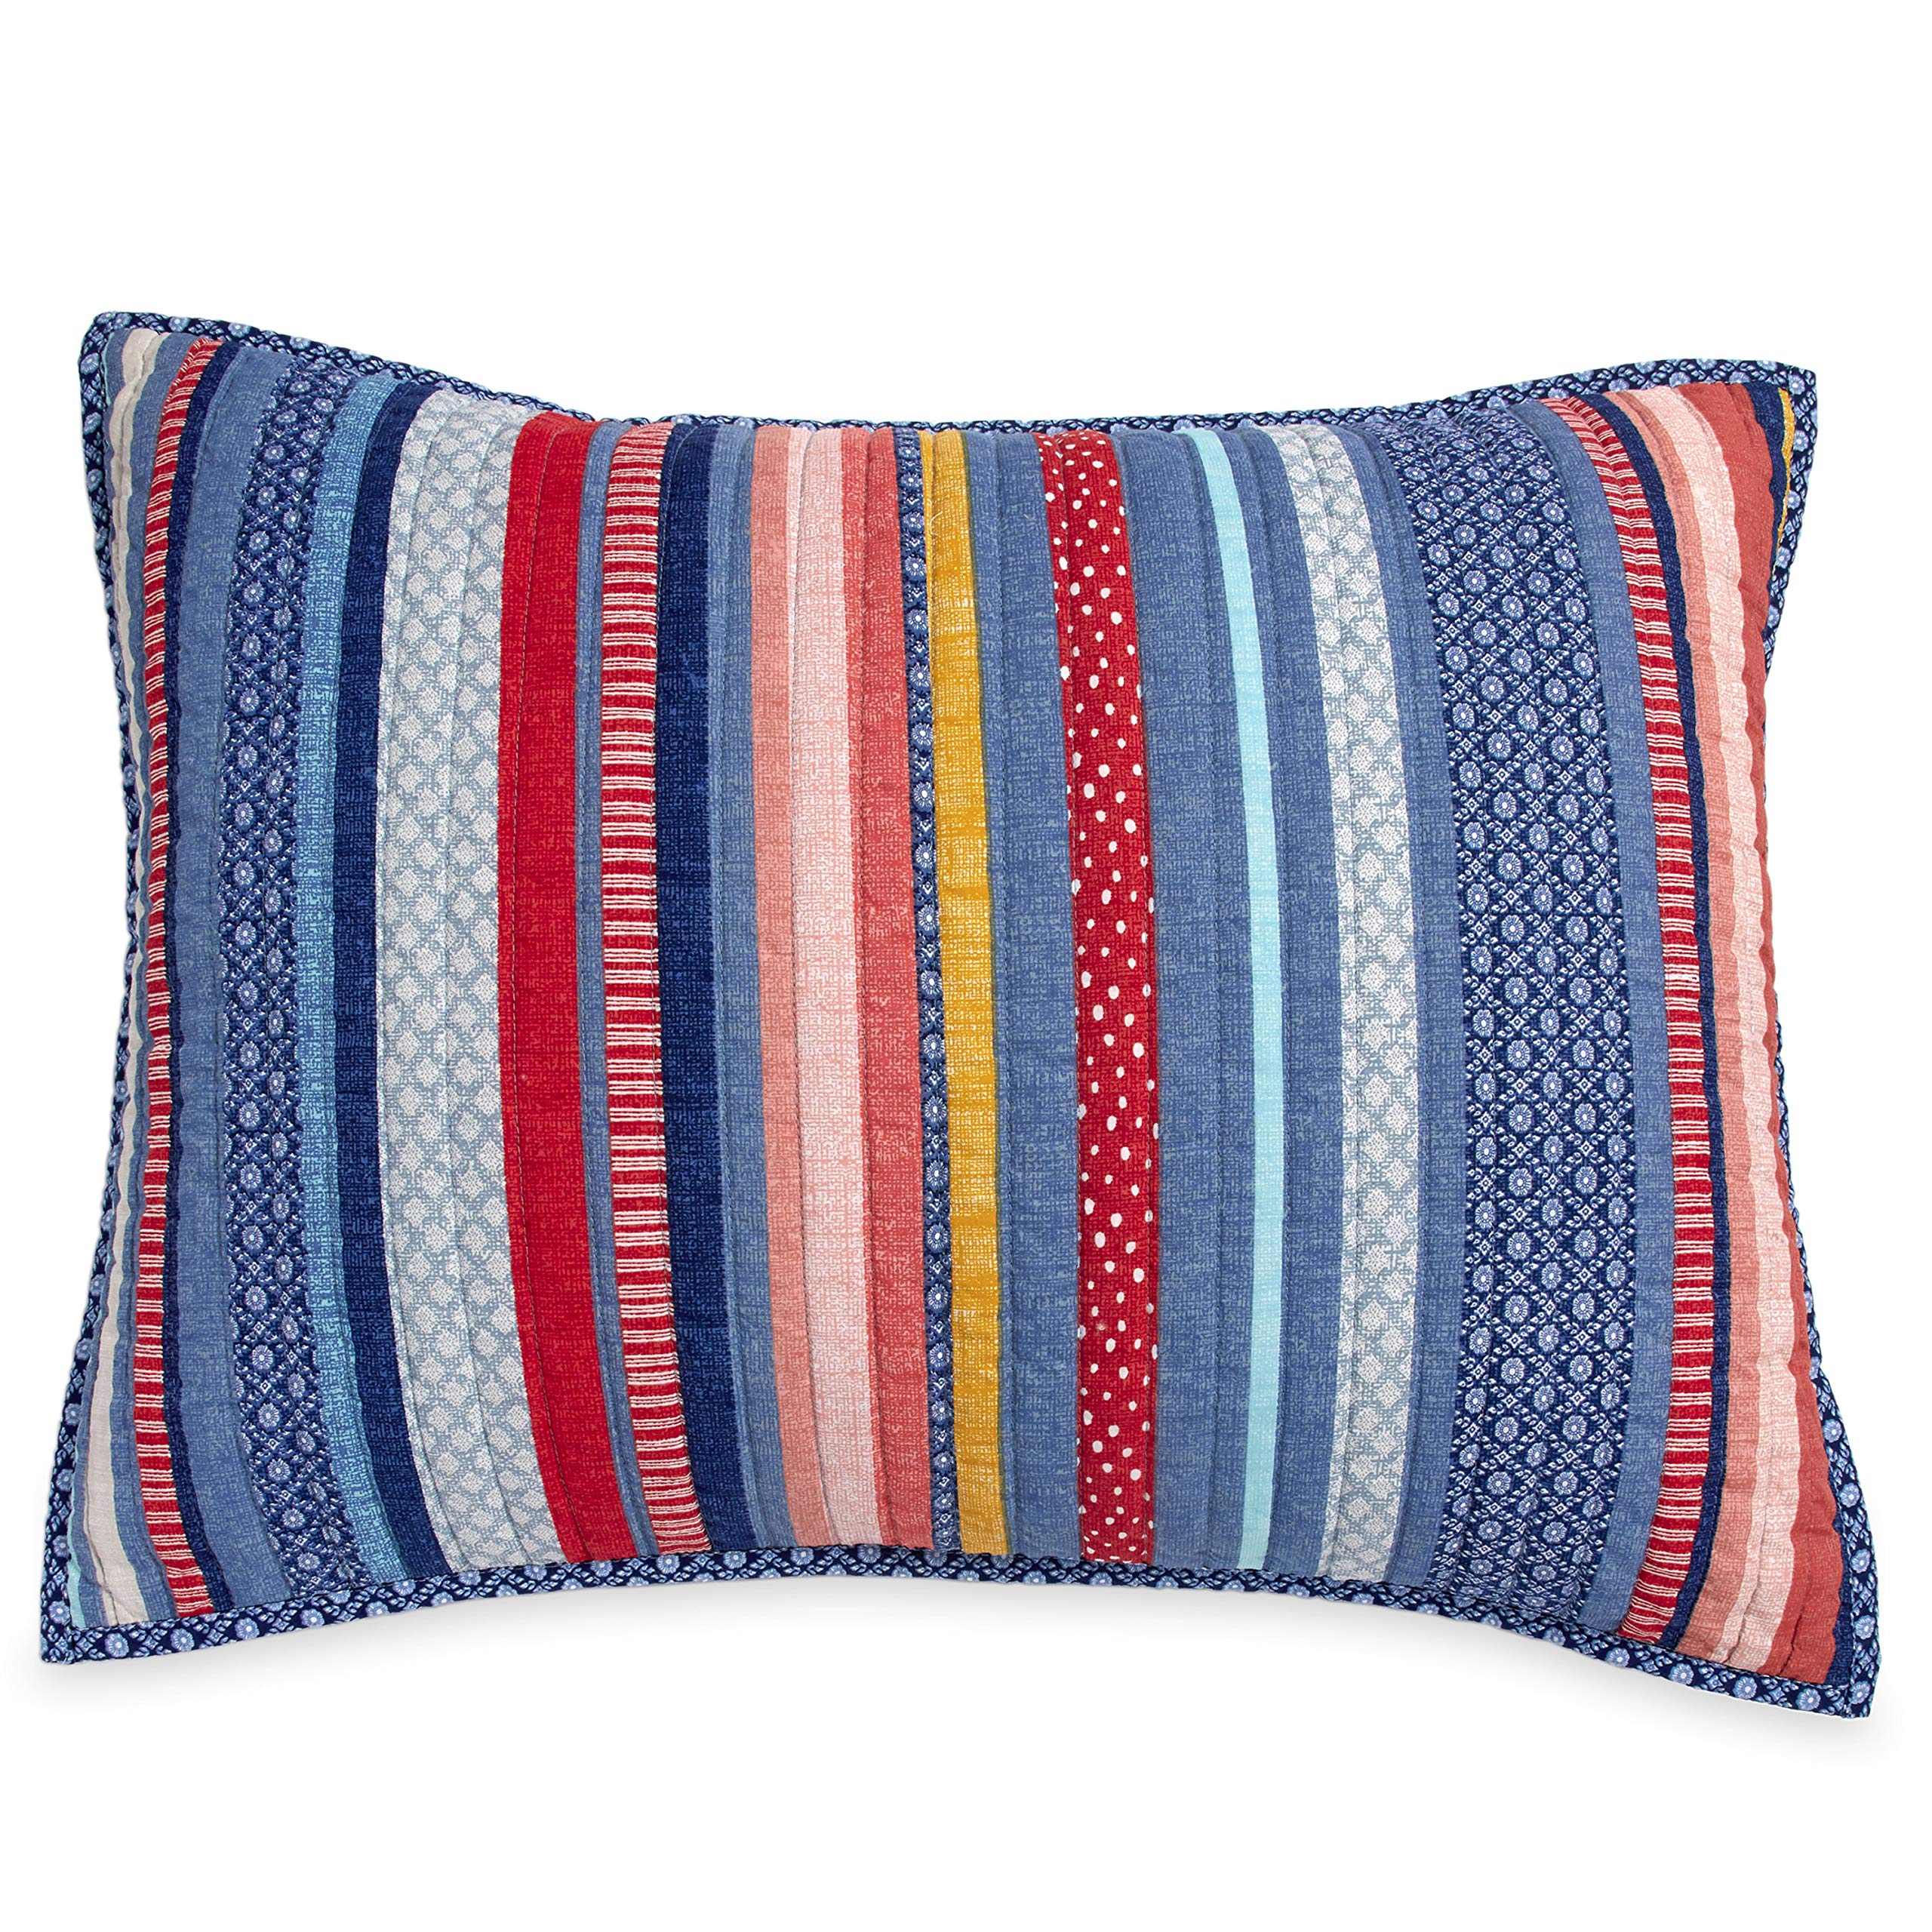 Bright Cheery Whimsical Knock Your Socks Off Easy Care Durable Charming Barn Dance Cotton Standard Sham Set - Uplifts and Adds Color to Any Room, Couch, Floor Or Space!